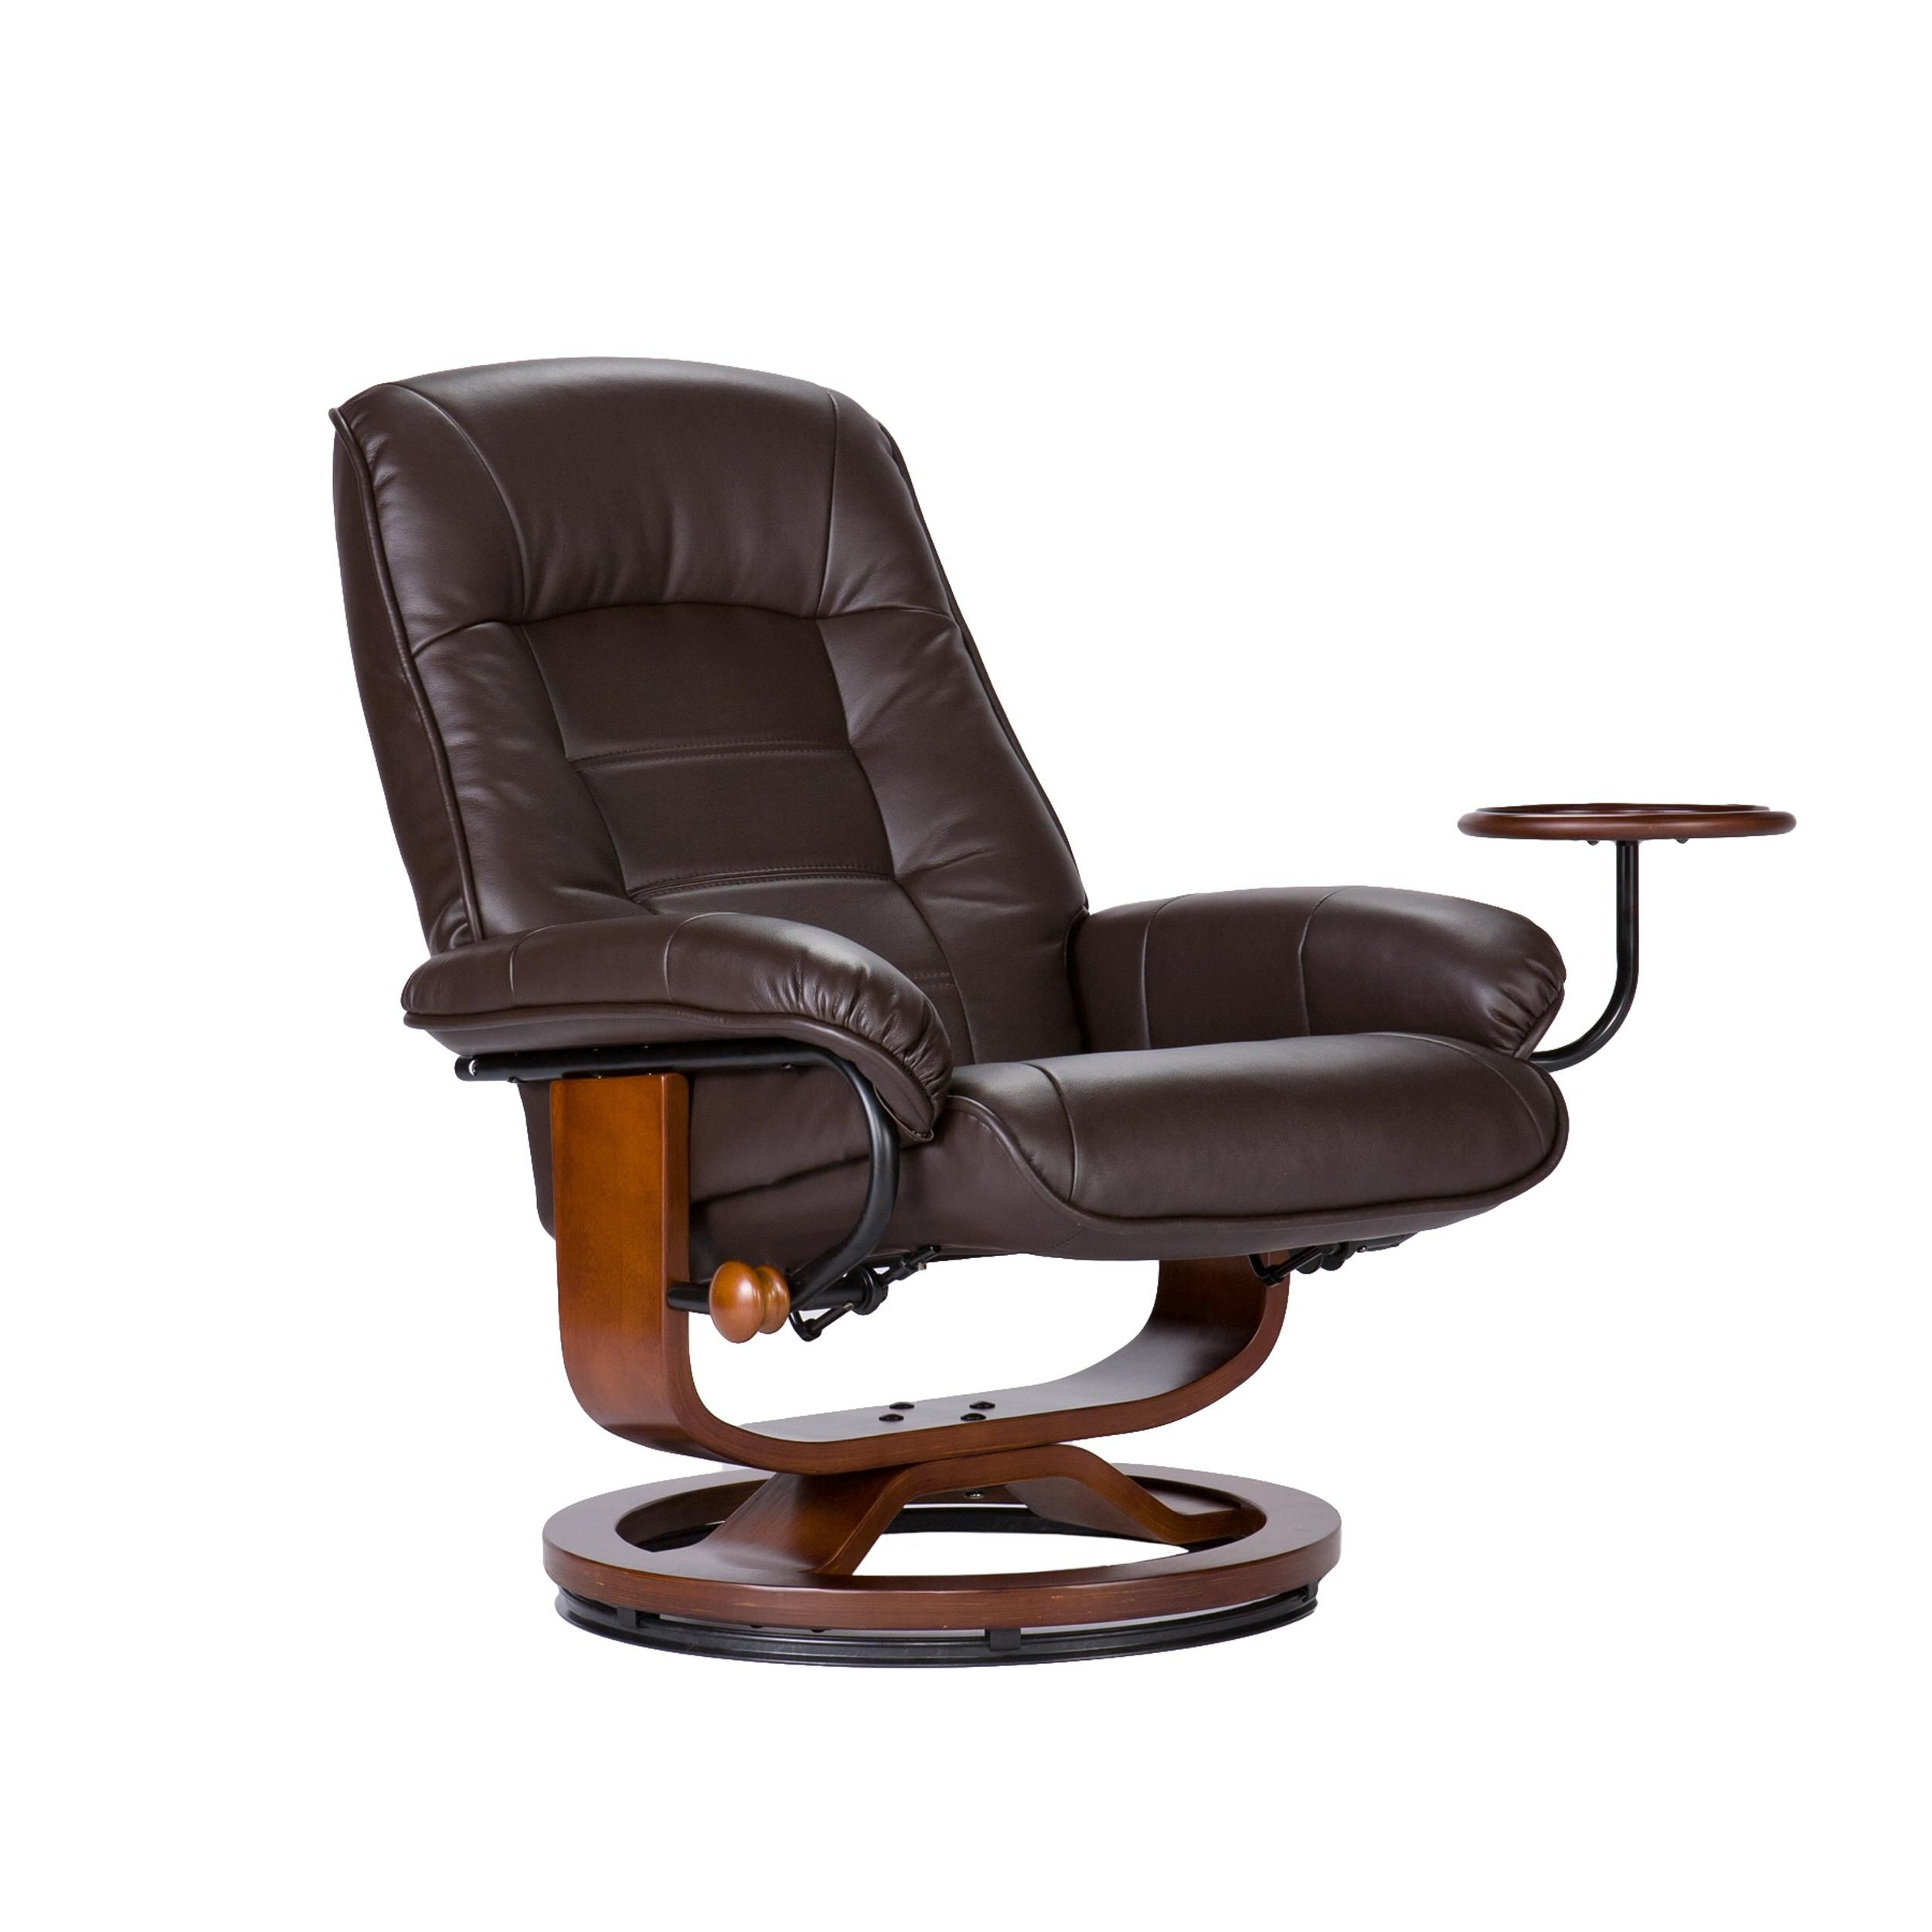 Stressless Amazon Amazon Southern Enterprises Leather Recliner With Side Table